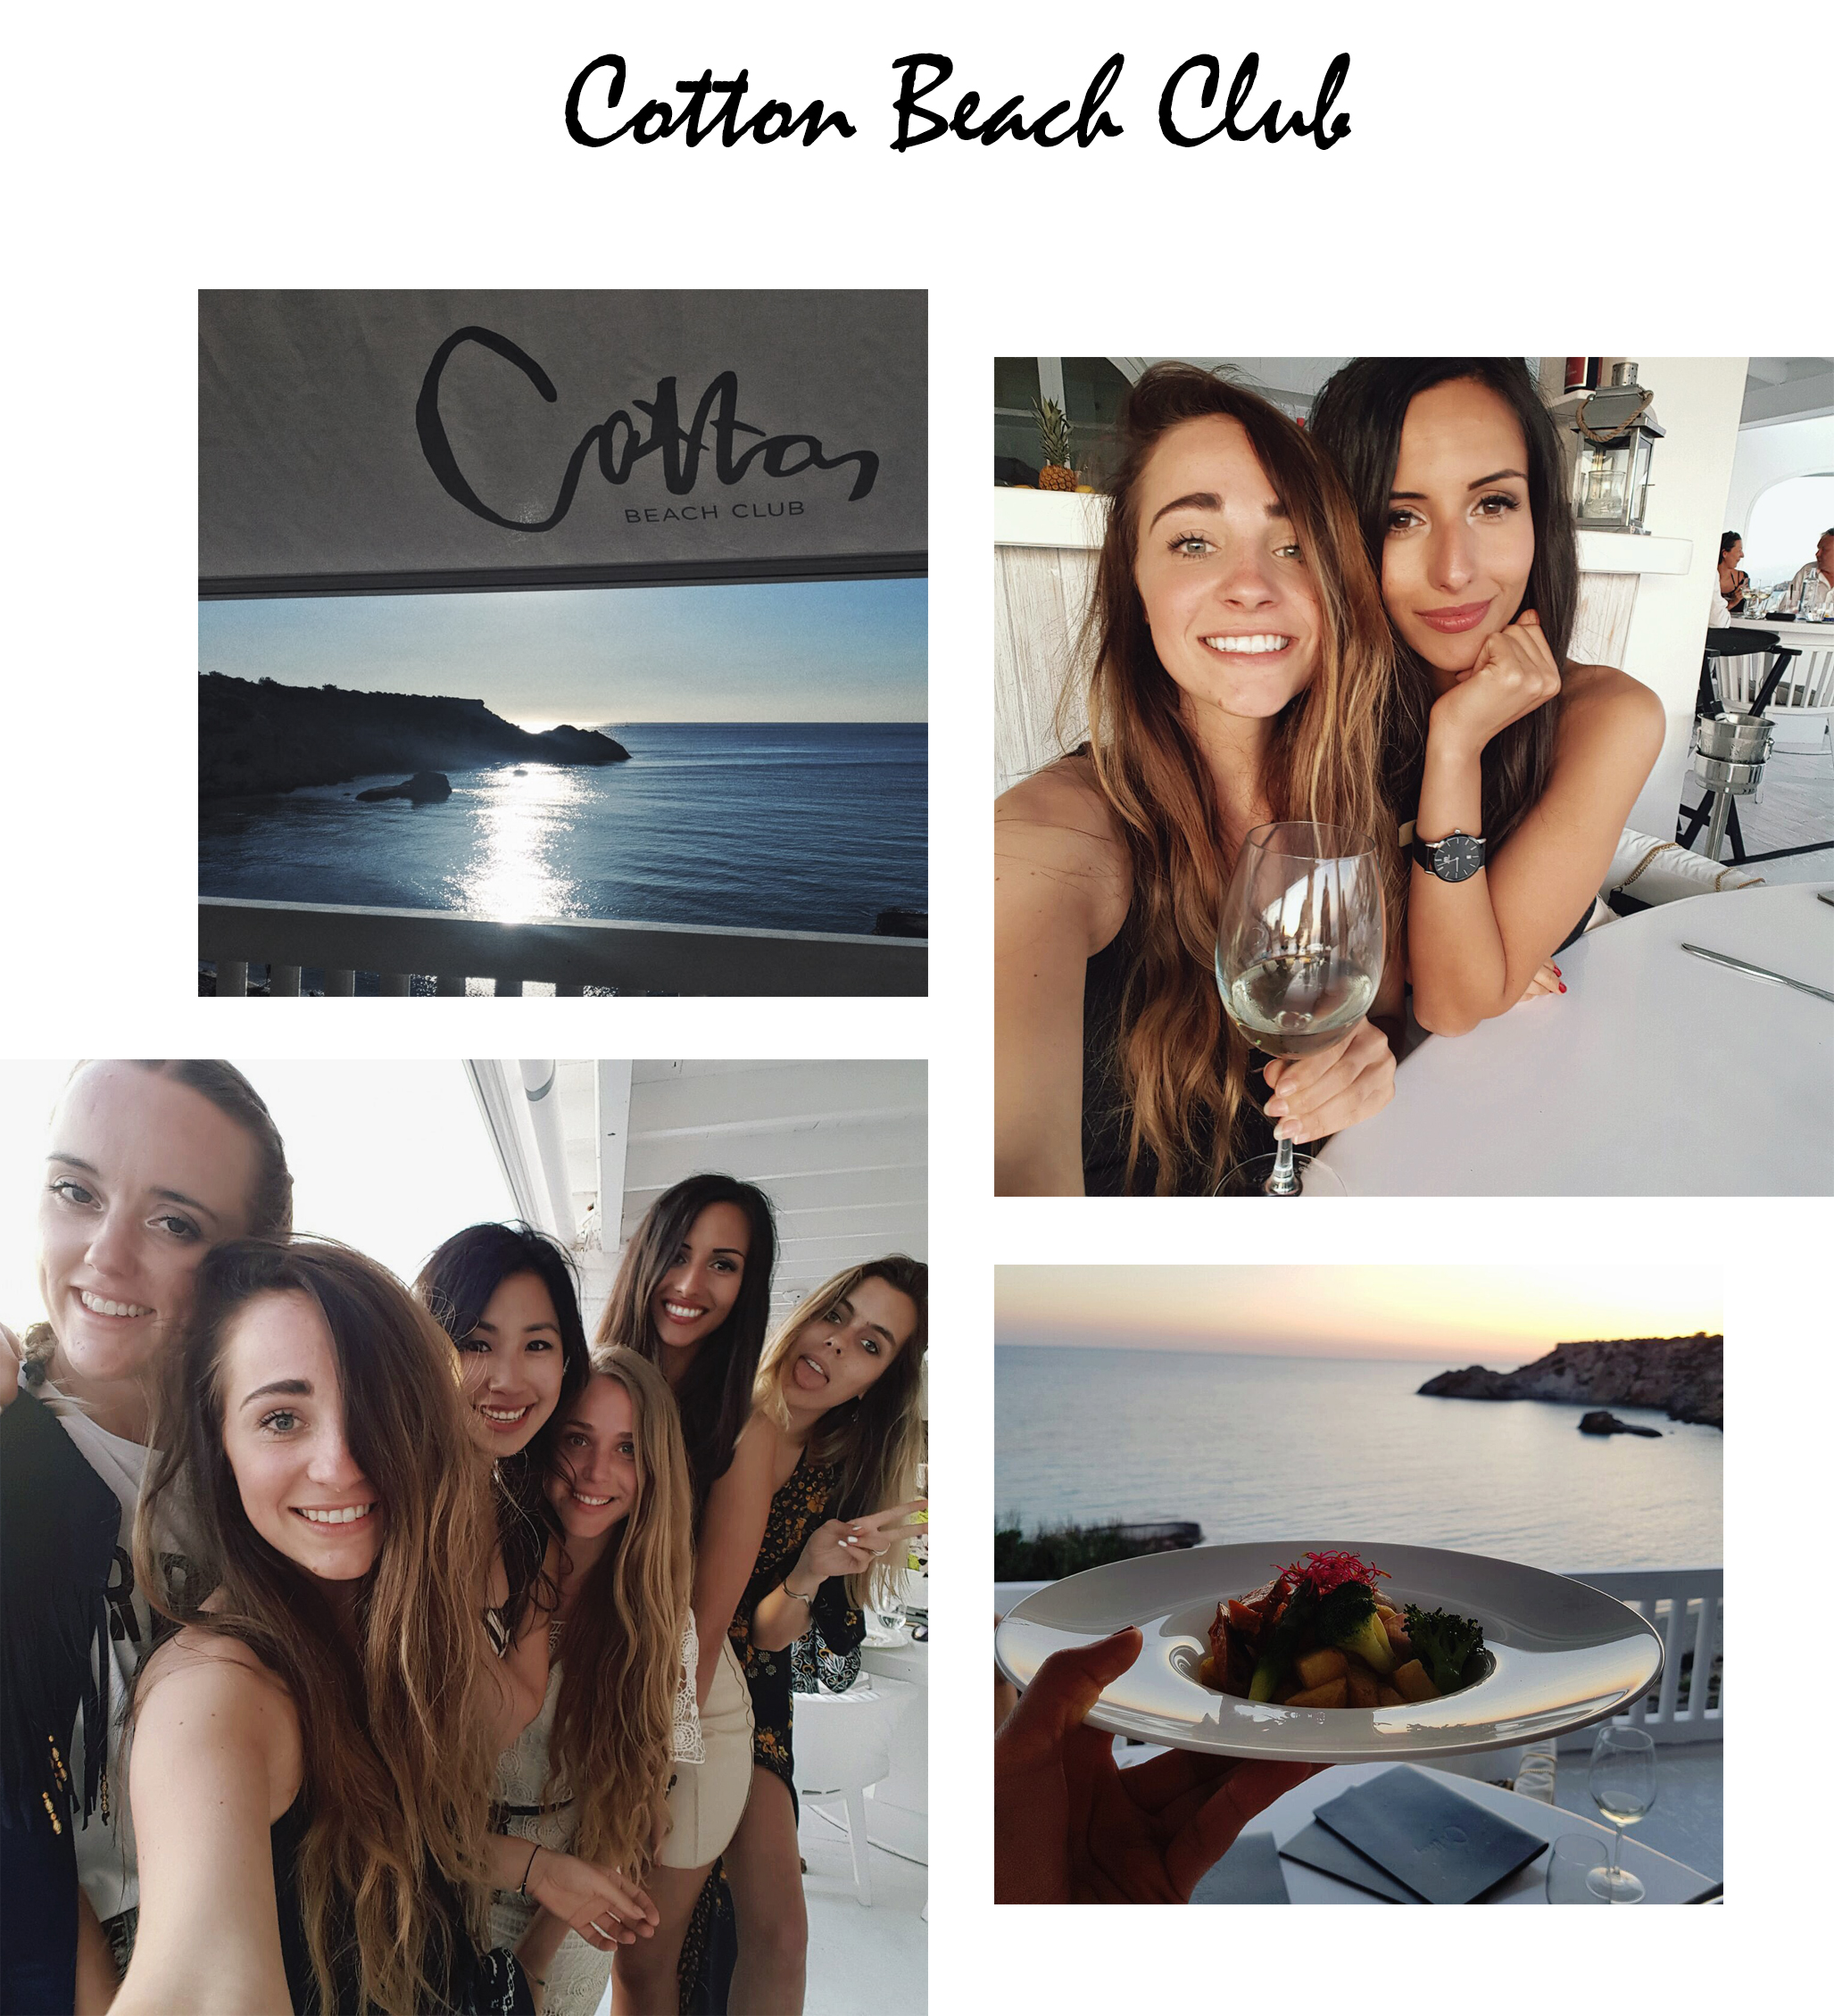 Cotton Beach club